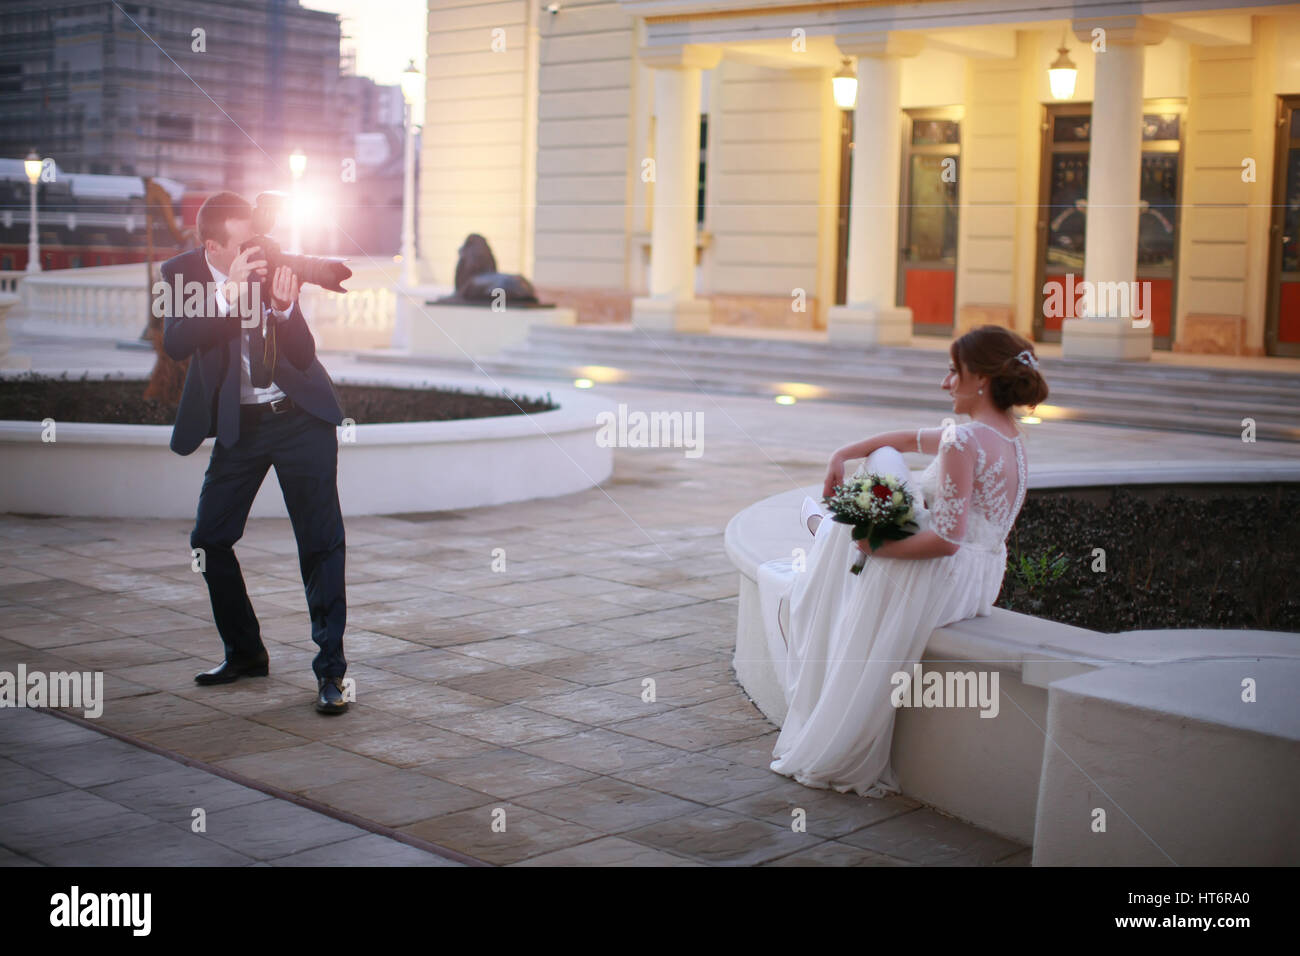 Groom shoot his beautiful bride with digital camera, photo shoot, wedding - Stock Image